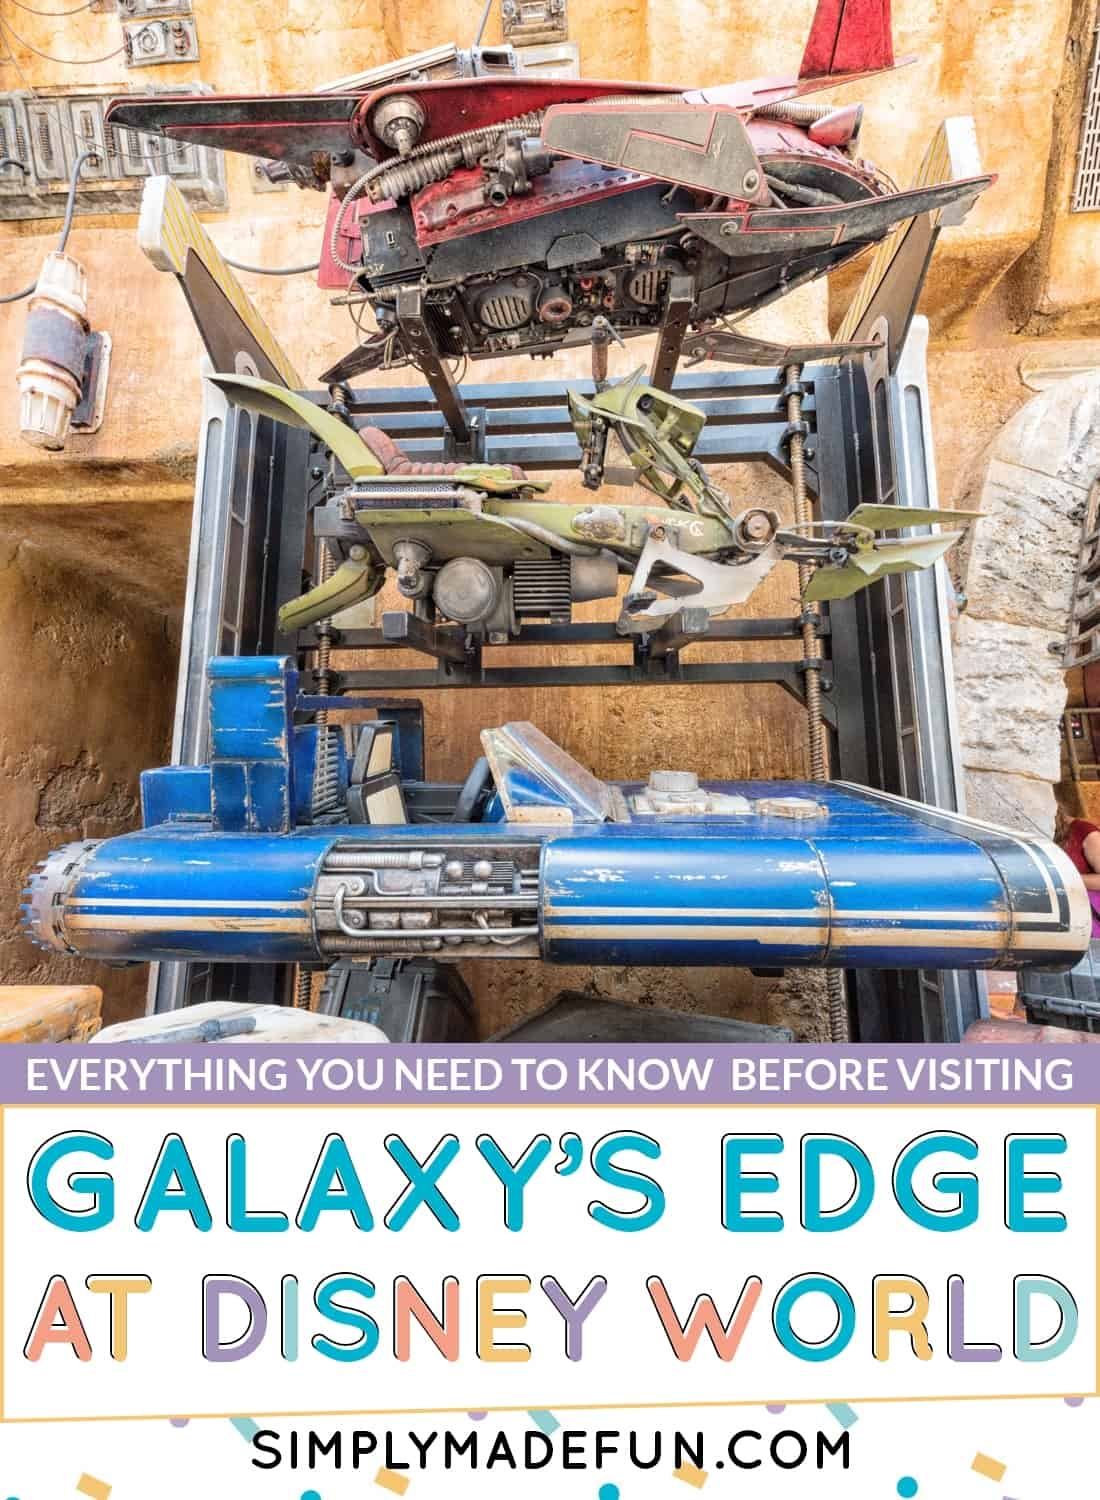 Star Wars Galaxy's Edge at Disney World